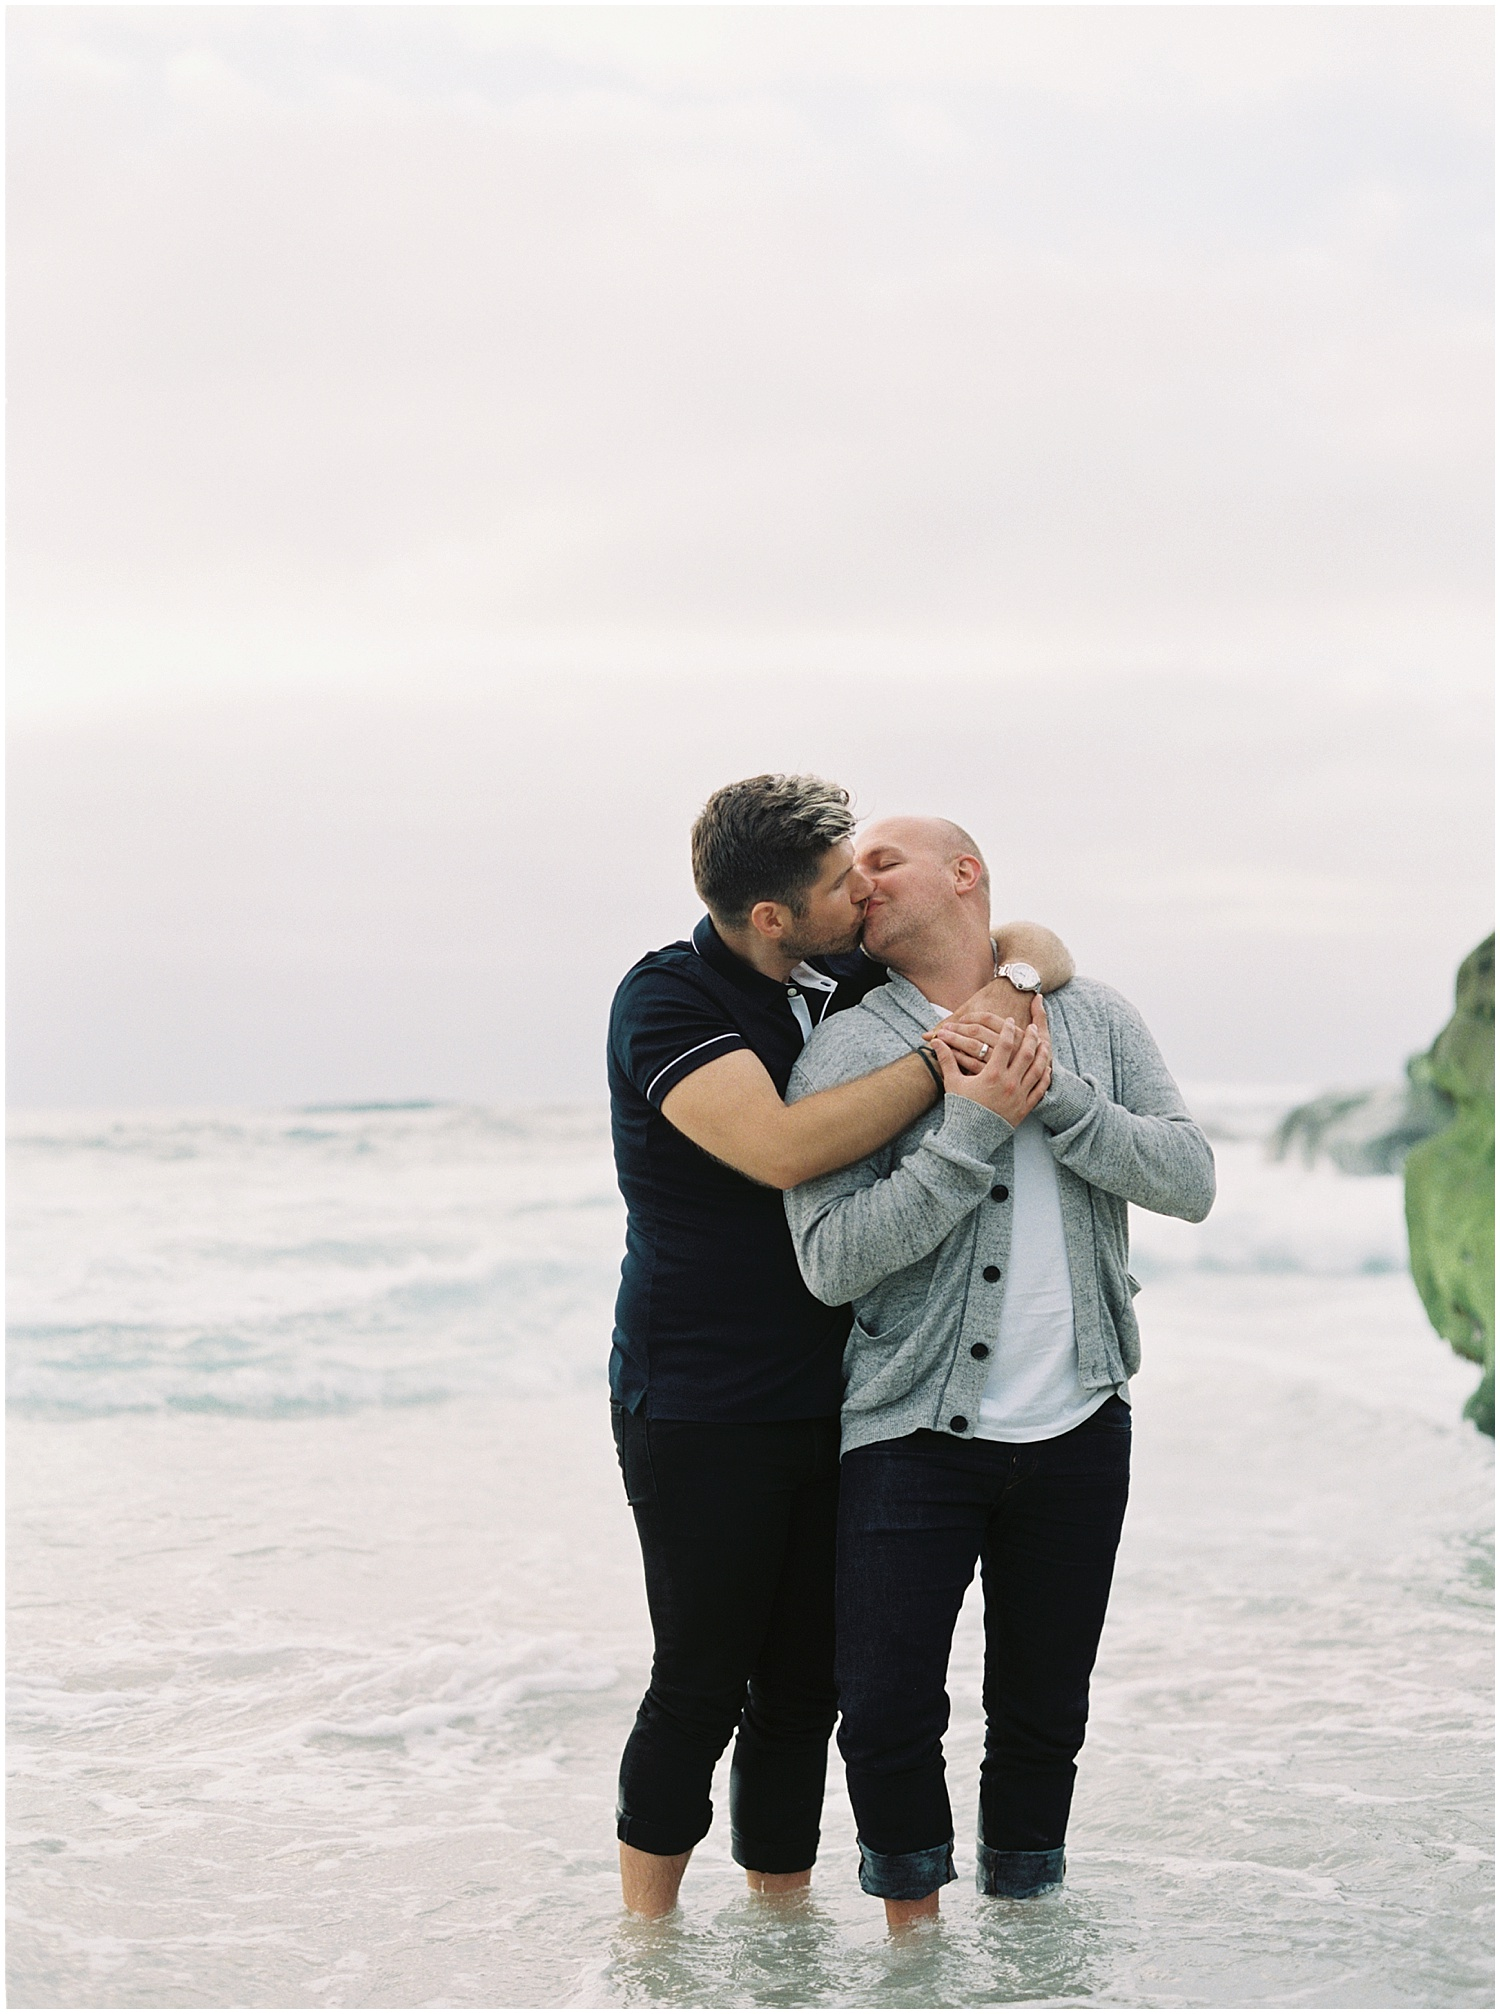 San_Francisco_Same_Sex_Wedding_photographer-20.jpg